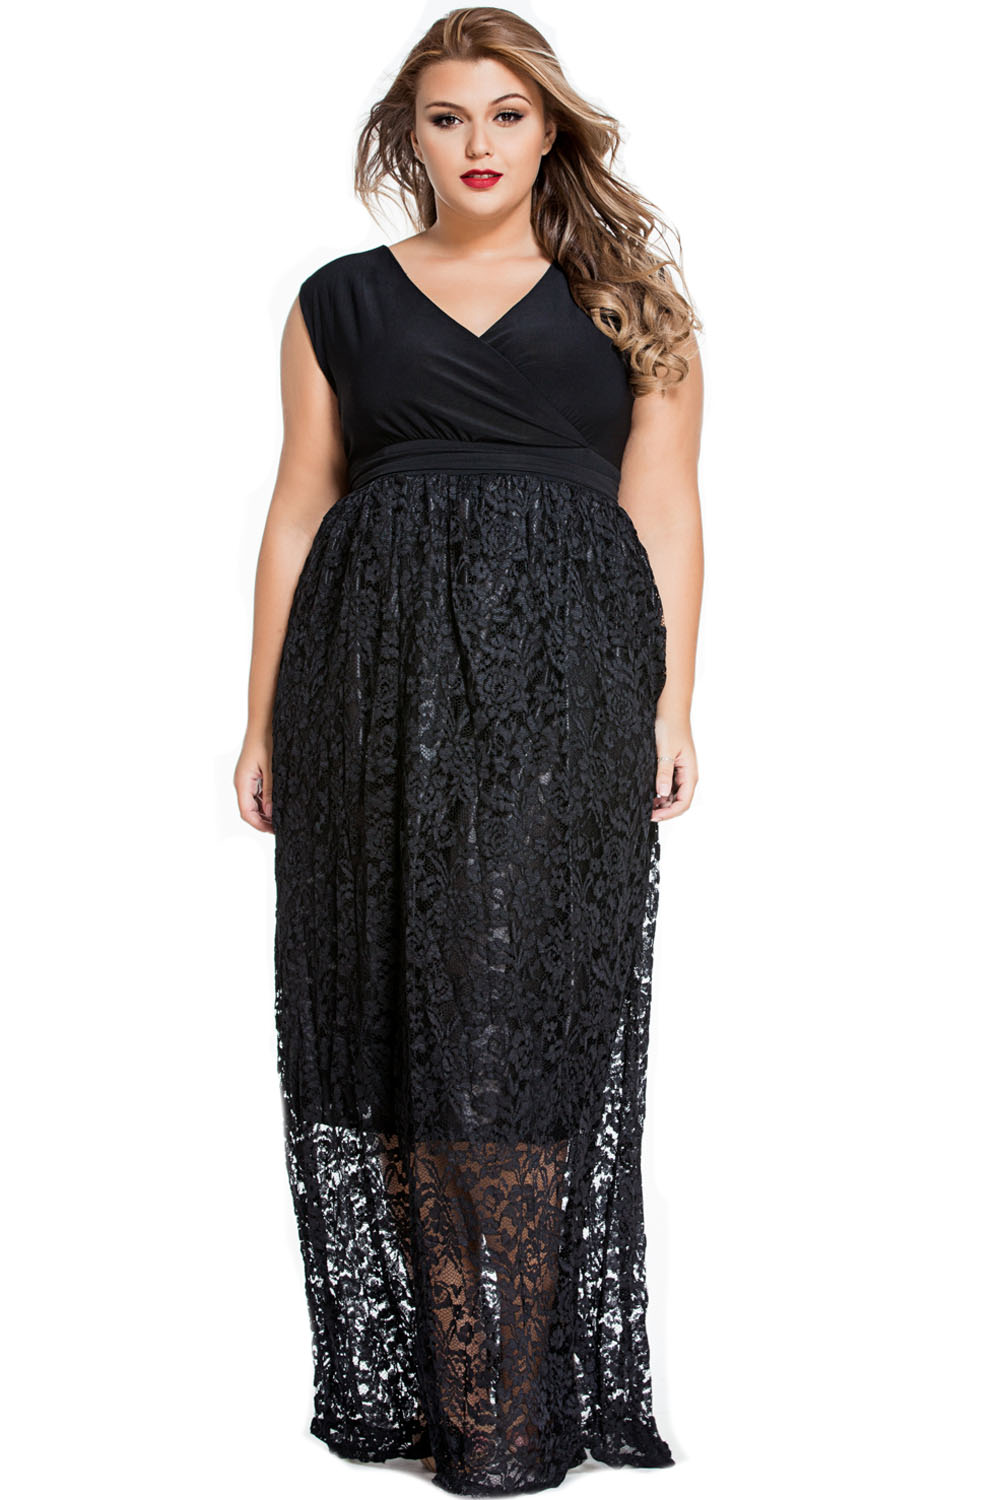 Sexy-V-Neck-Floral-Lace-Maxi-Skirt-Plus-Dress-Women-Casual-Work-Brief-Summer